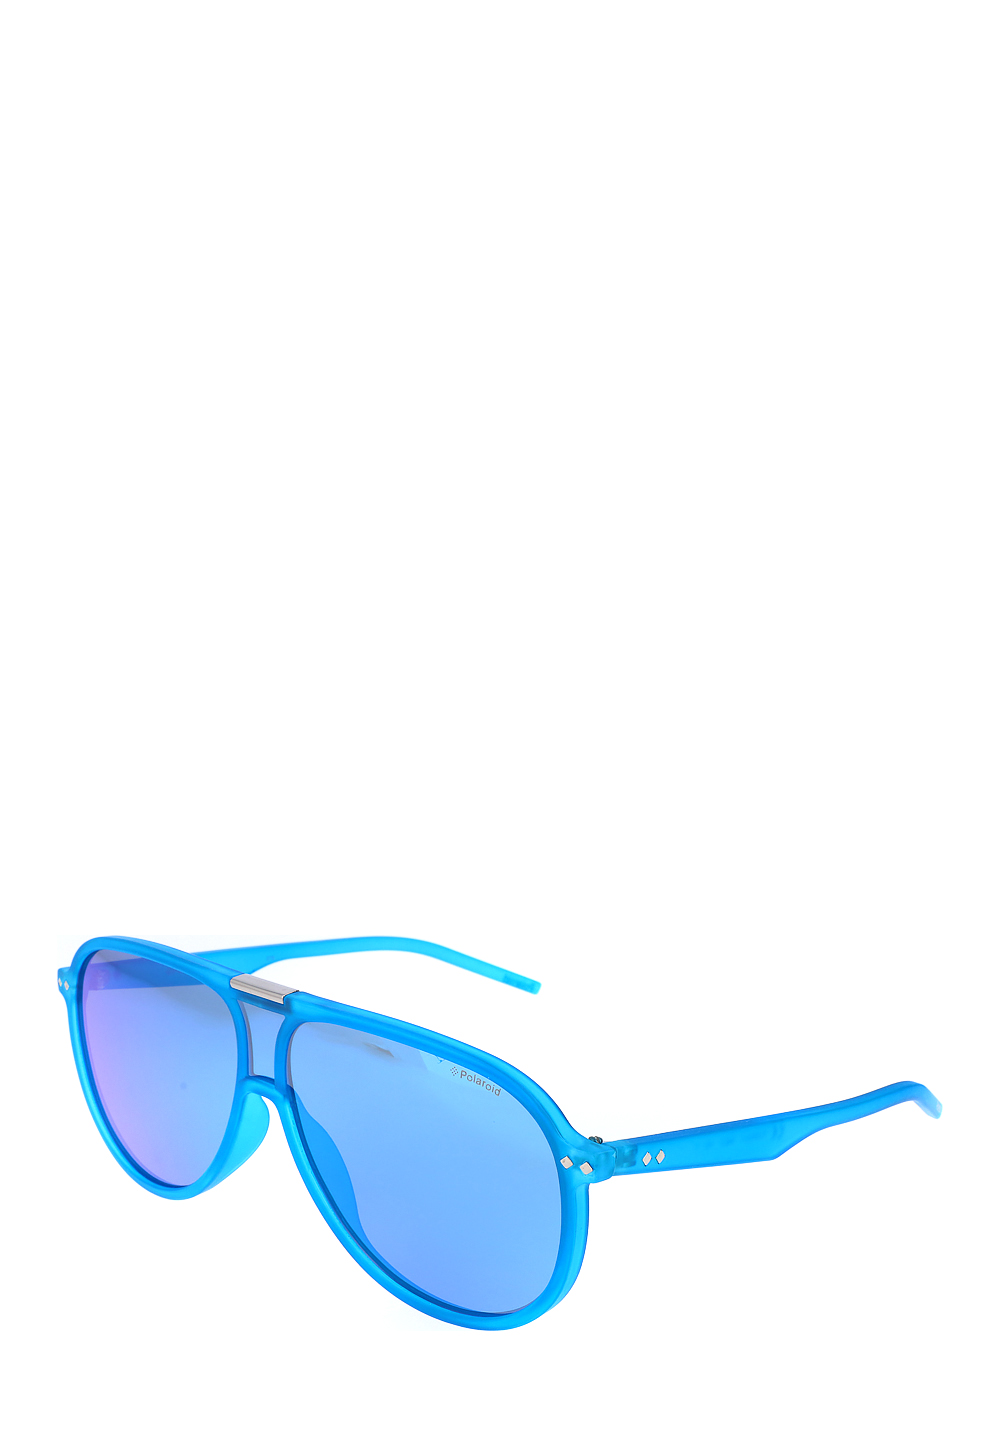 Sonnenbrille Pld6025/S, polarized, Uv400, blue blau